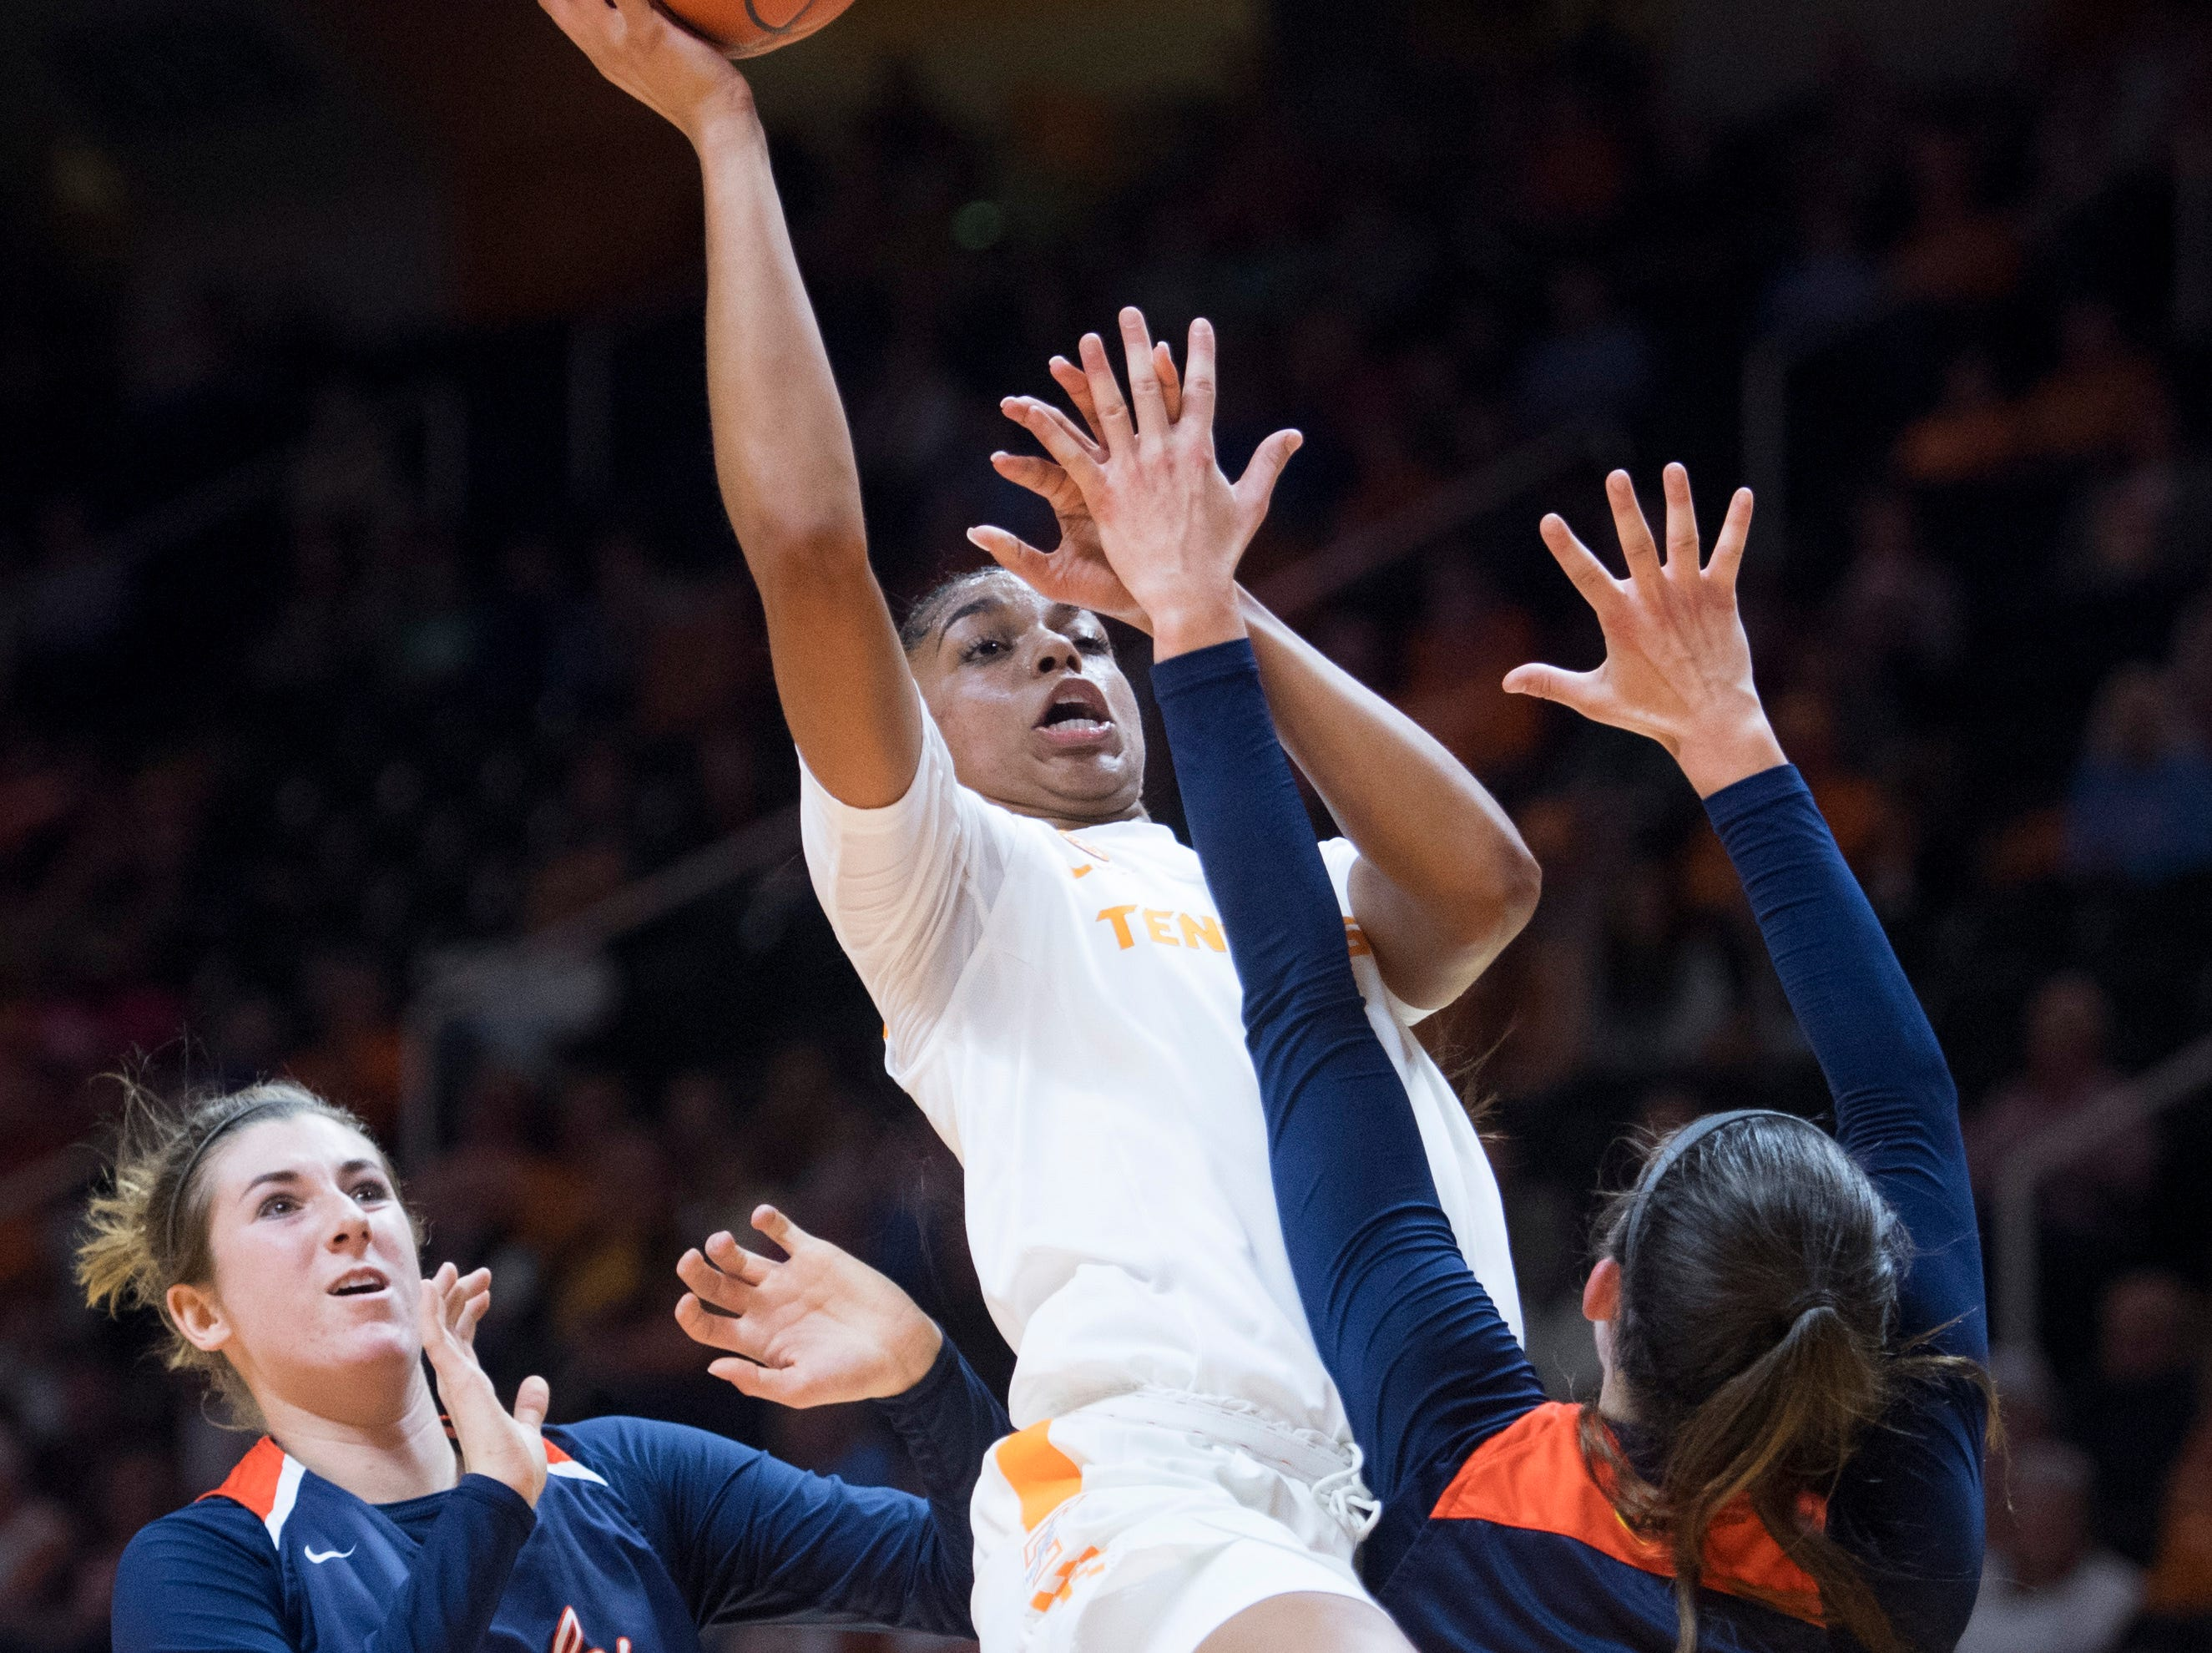 Tennessee's Evina Westbrook attempts to score over Carson-Newman's Kayla Marosites, right, and Mika Wester during an exhibition game at Thompson-Boling Arena on Monday, November 5, 2018.